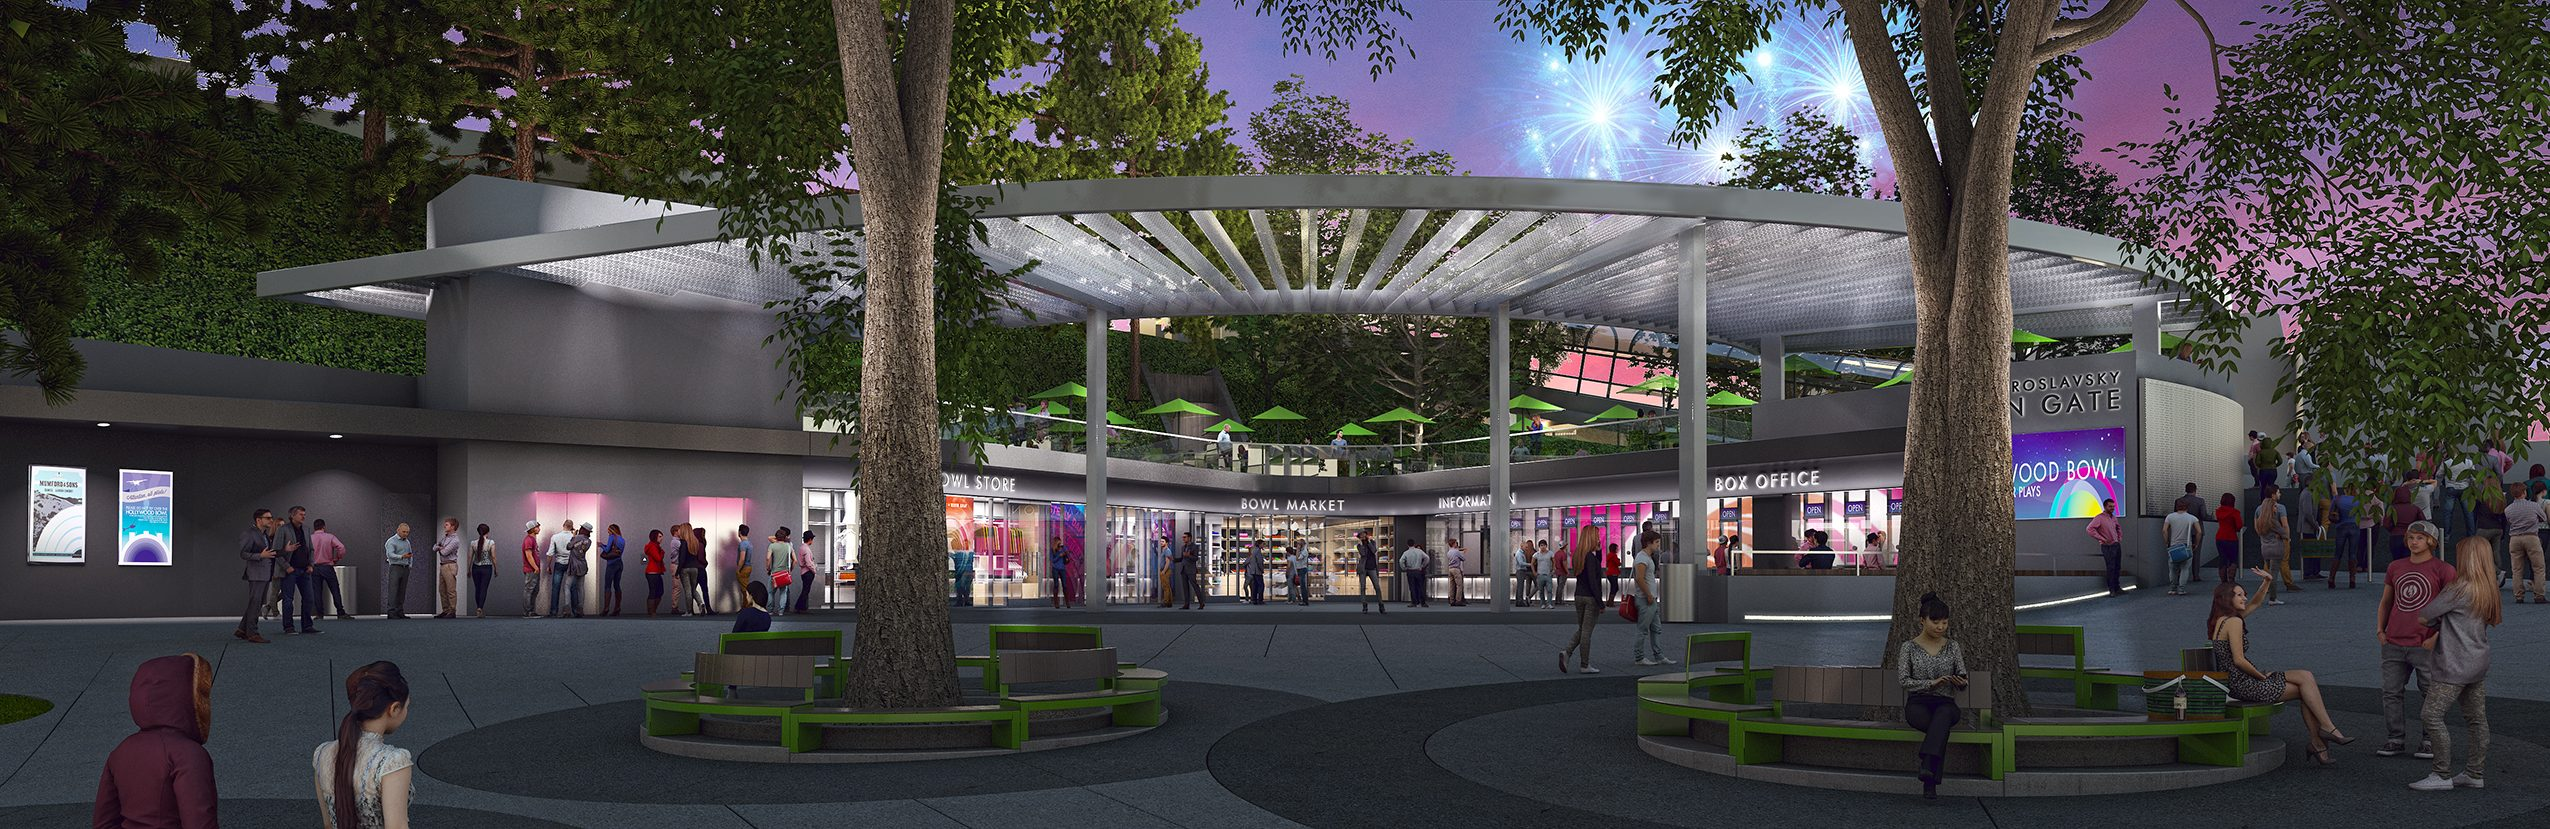 Hollywood bowl box office night matt construction rios clementi hale rendering